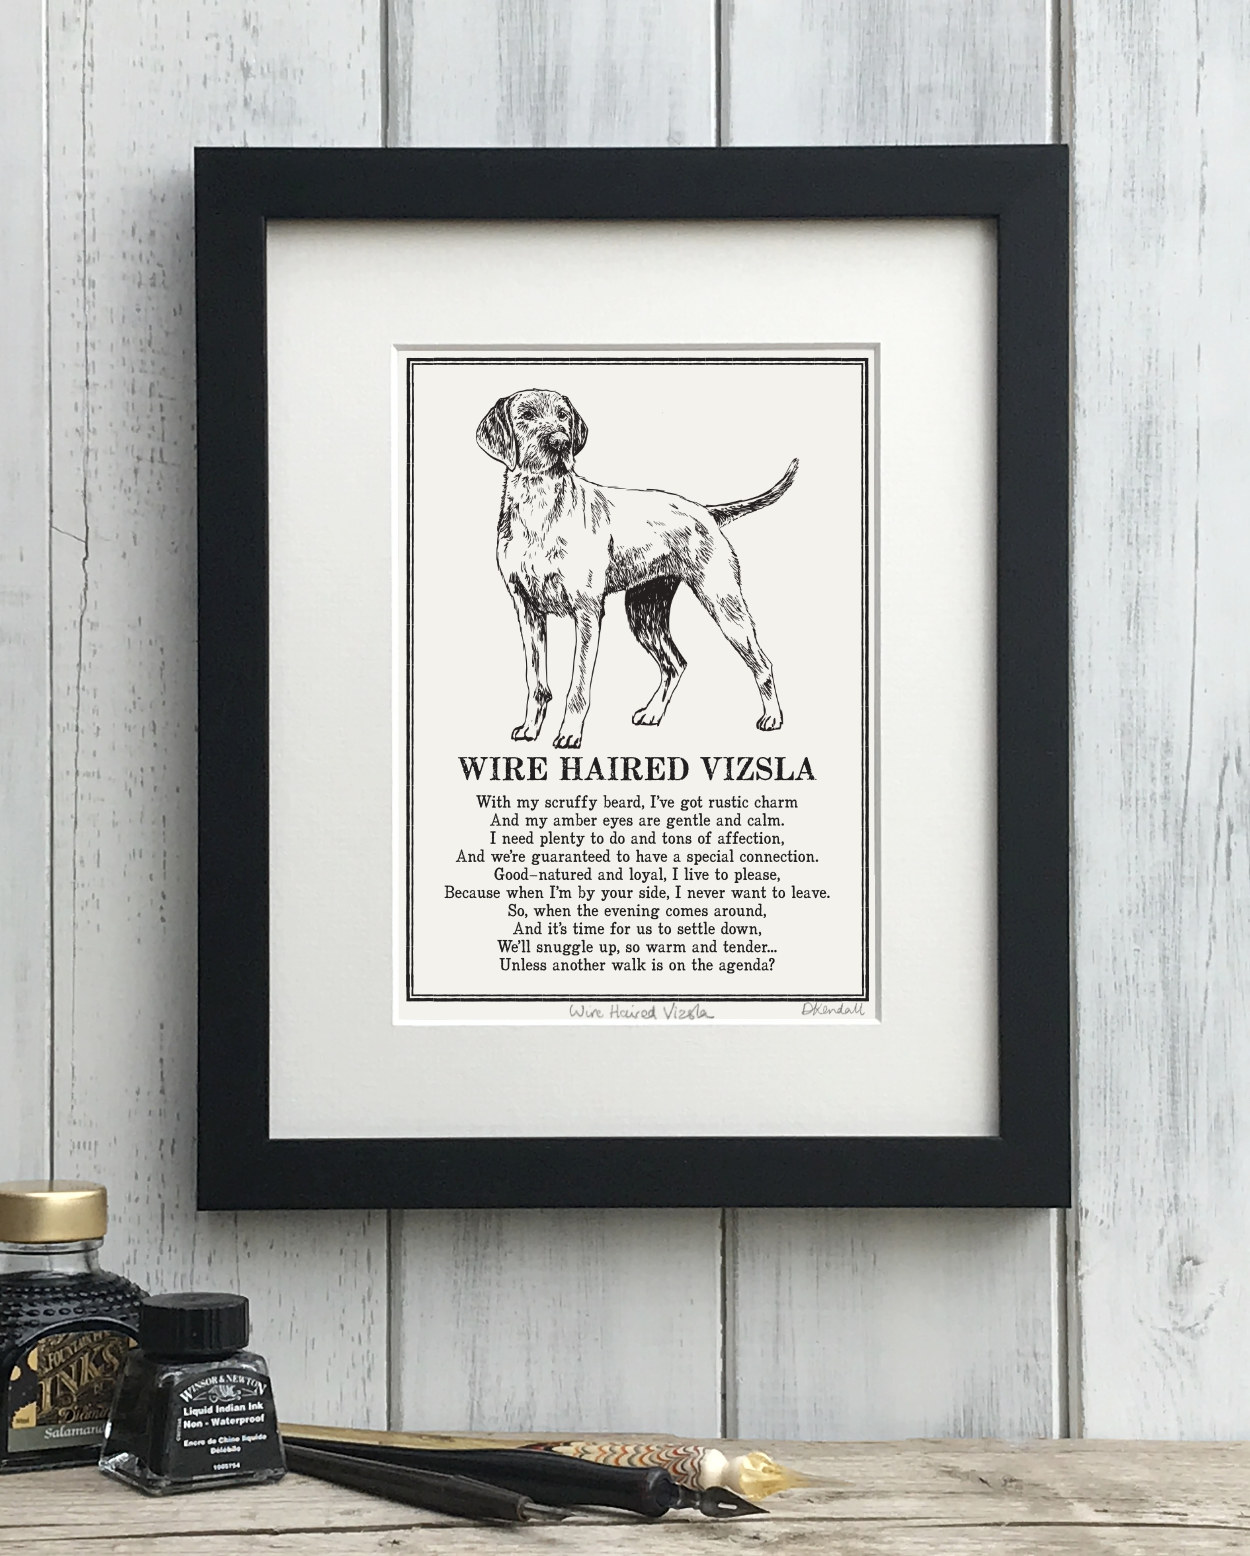 Wire Haired Vizsla Illustrated Poem Print | The Enlightened Hound